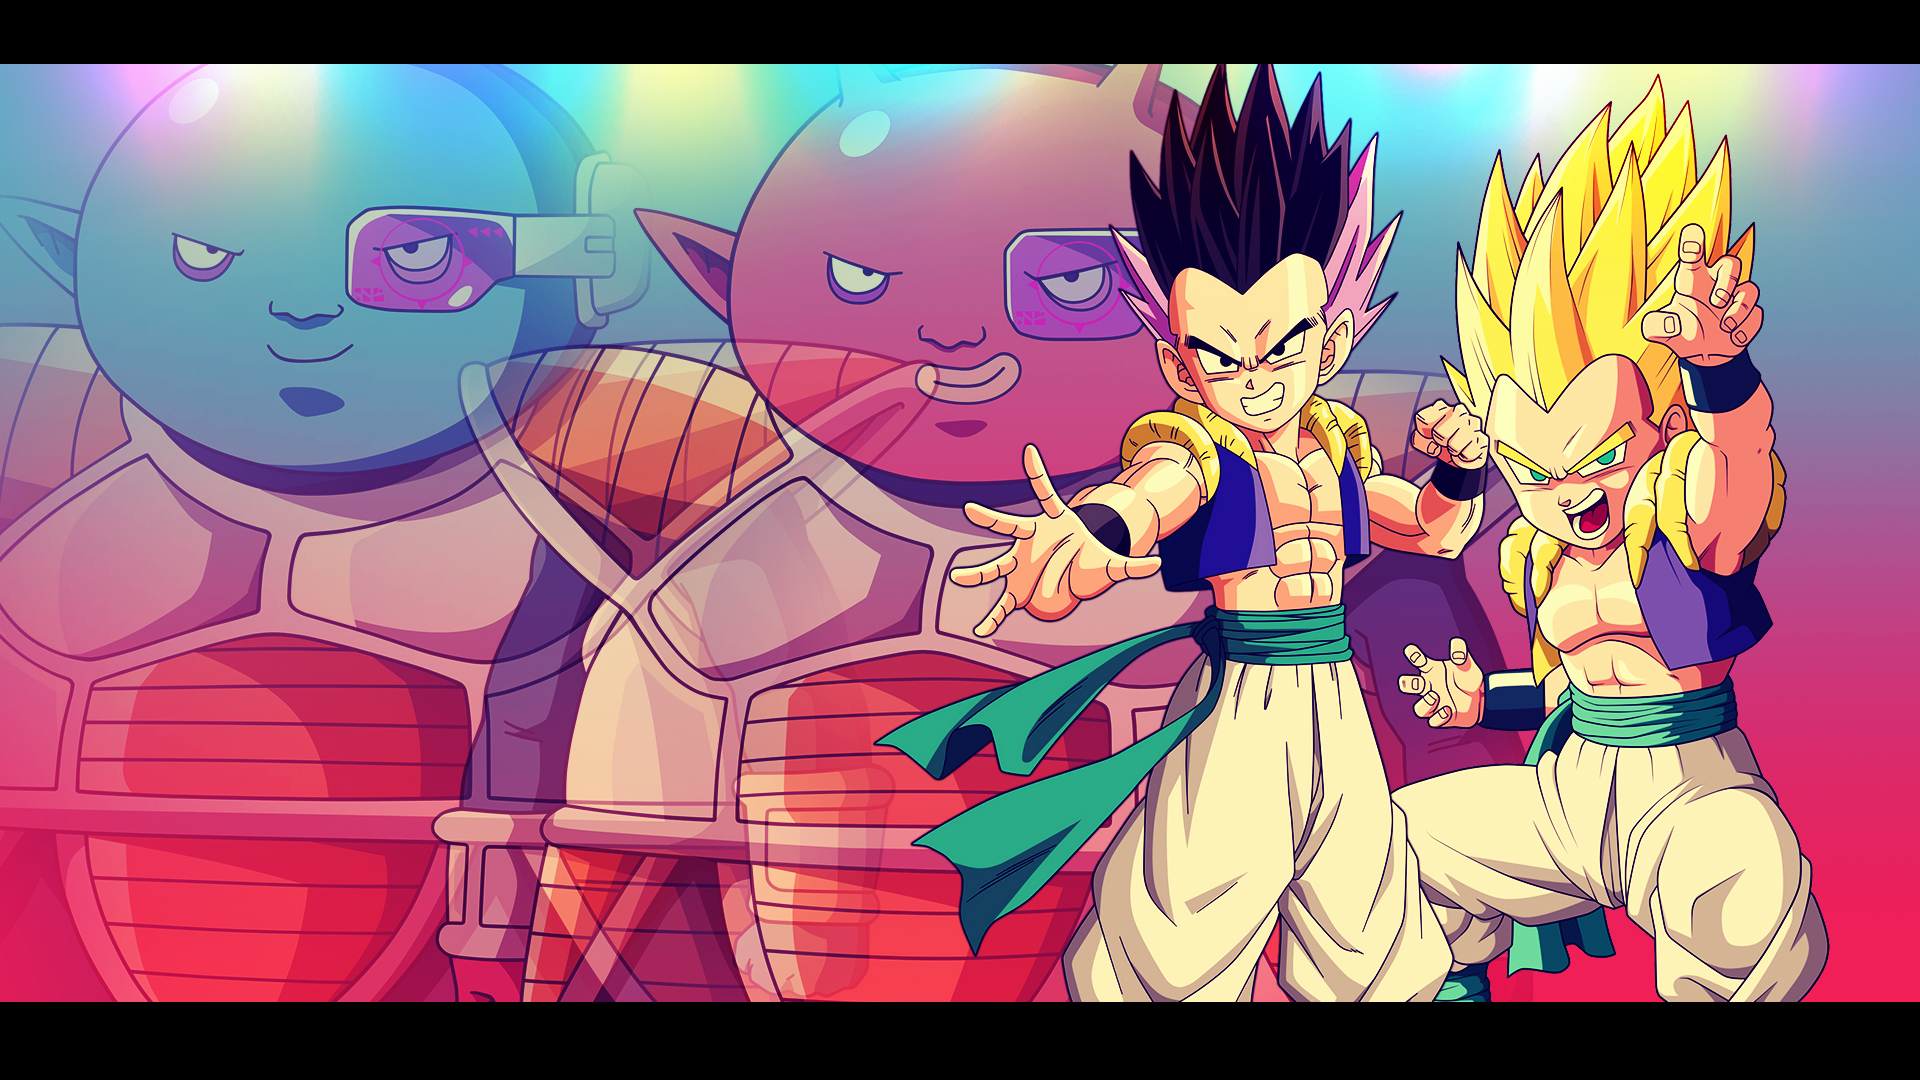 Gotenks Vs Abo Cado Dbz Wallpaper 1920 1080 By Oirigns On